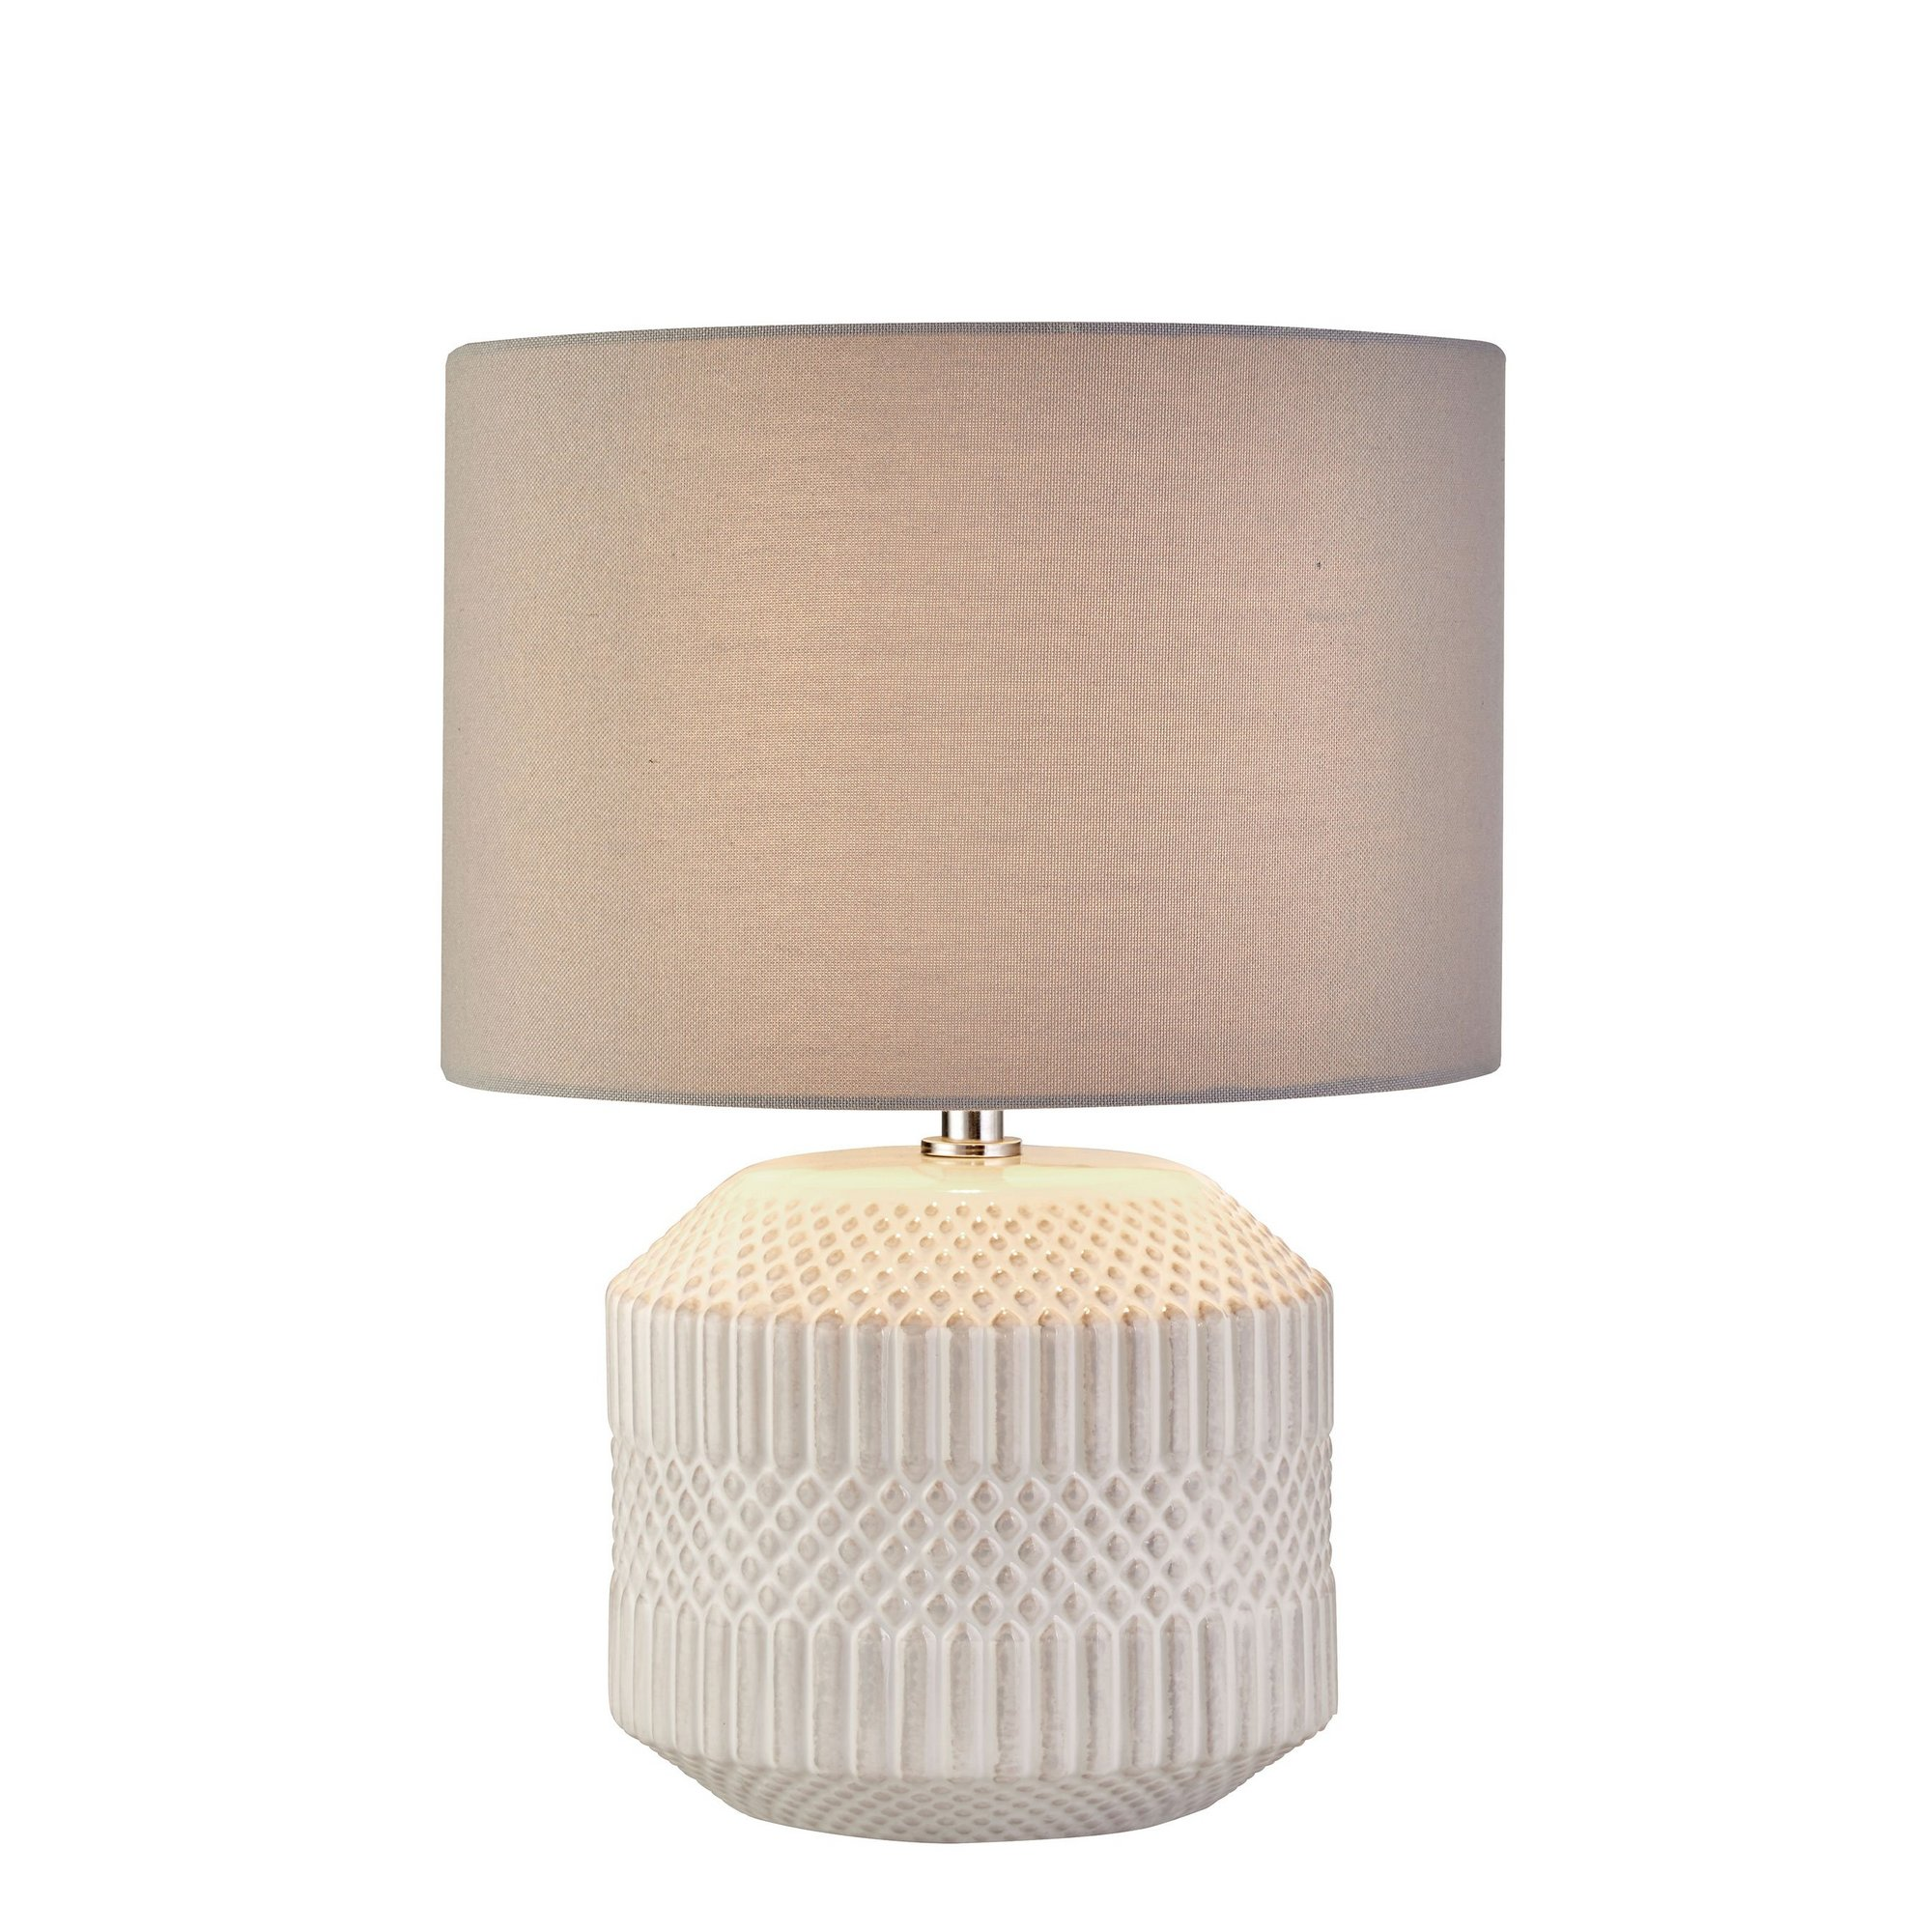 Image of Anders Textured Ceramic Table Lamp